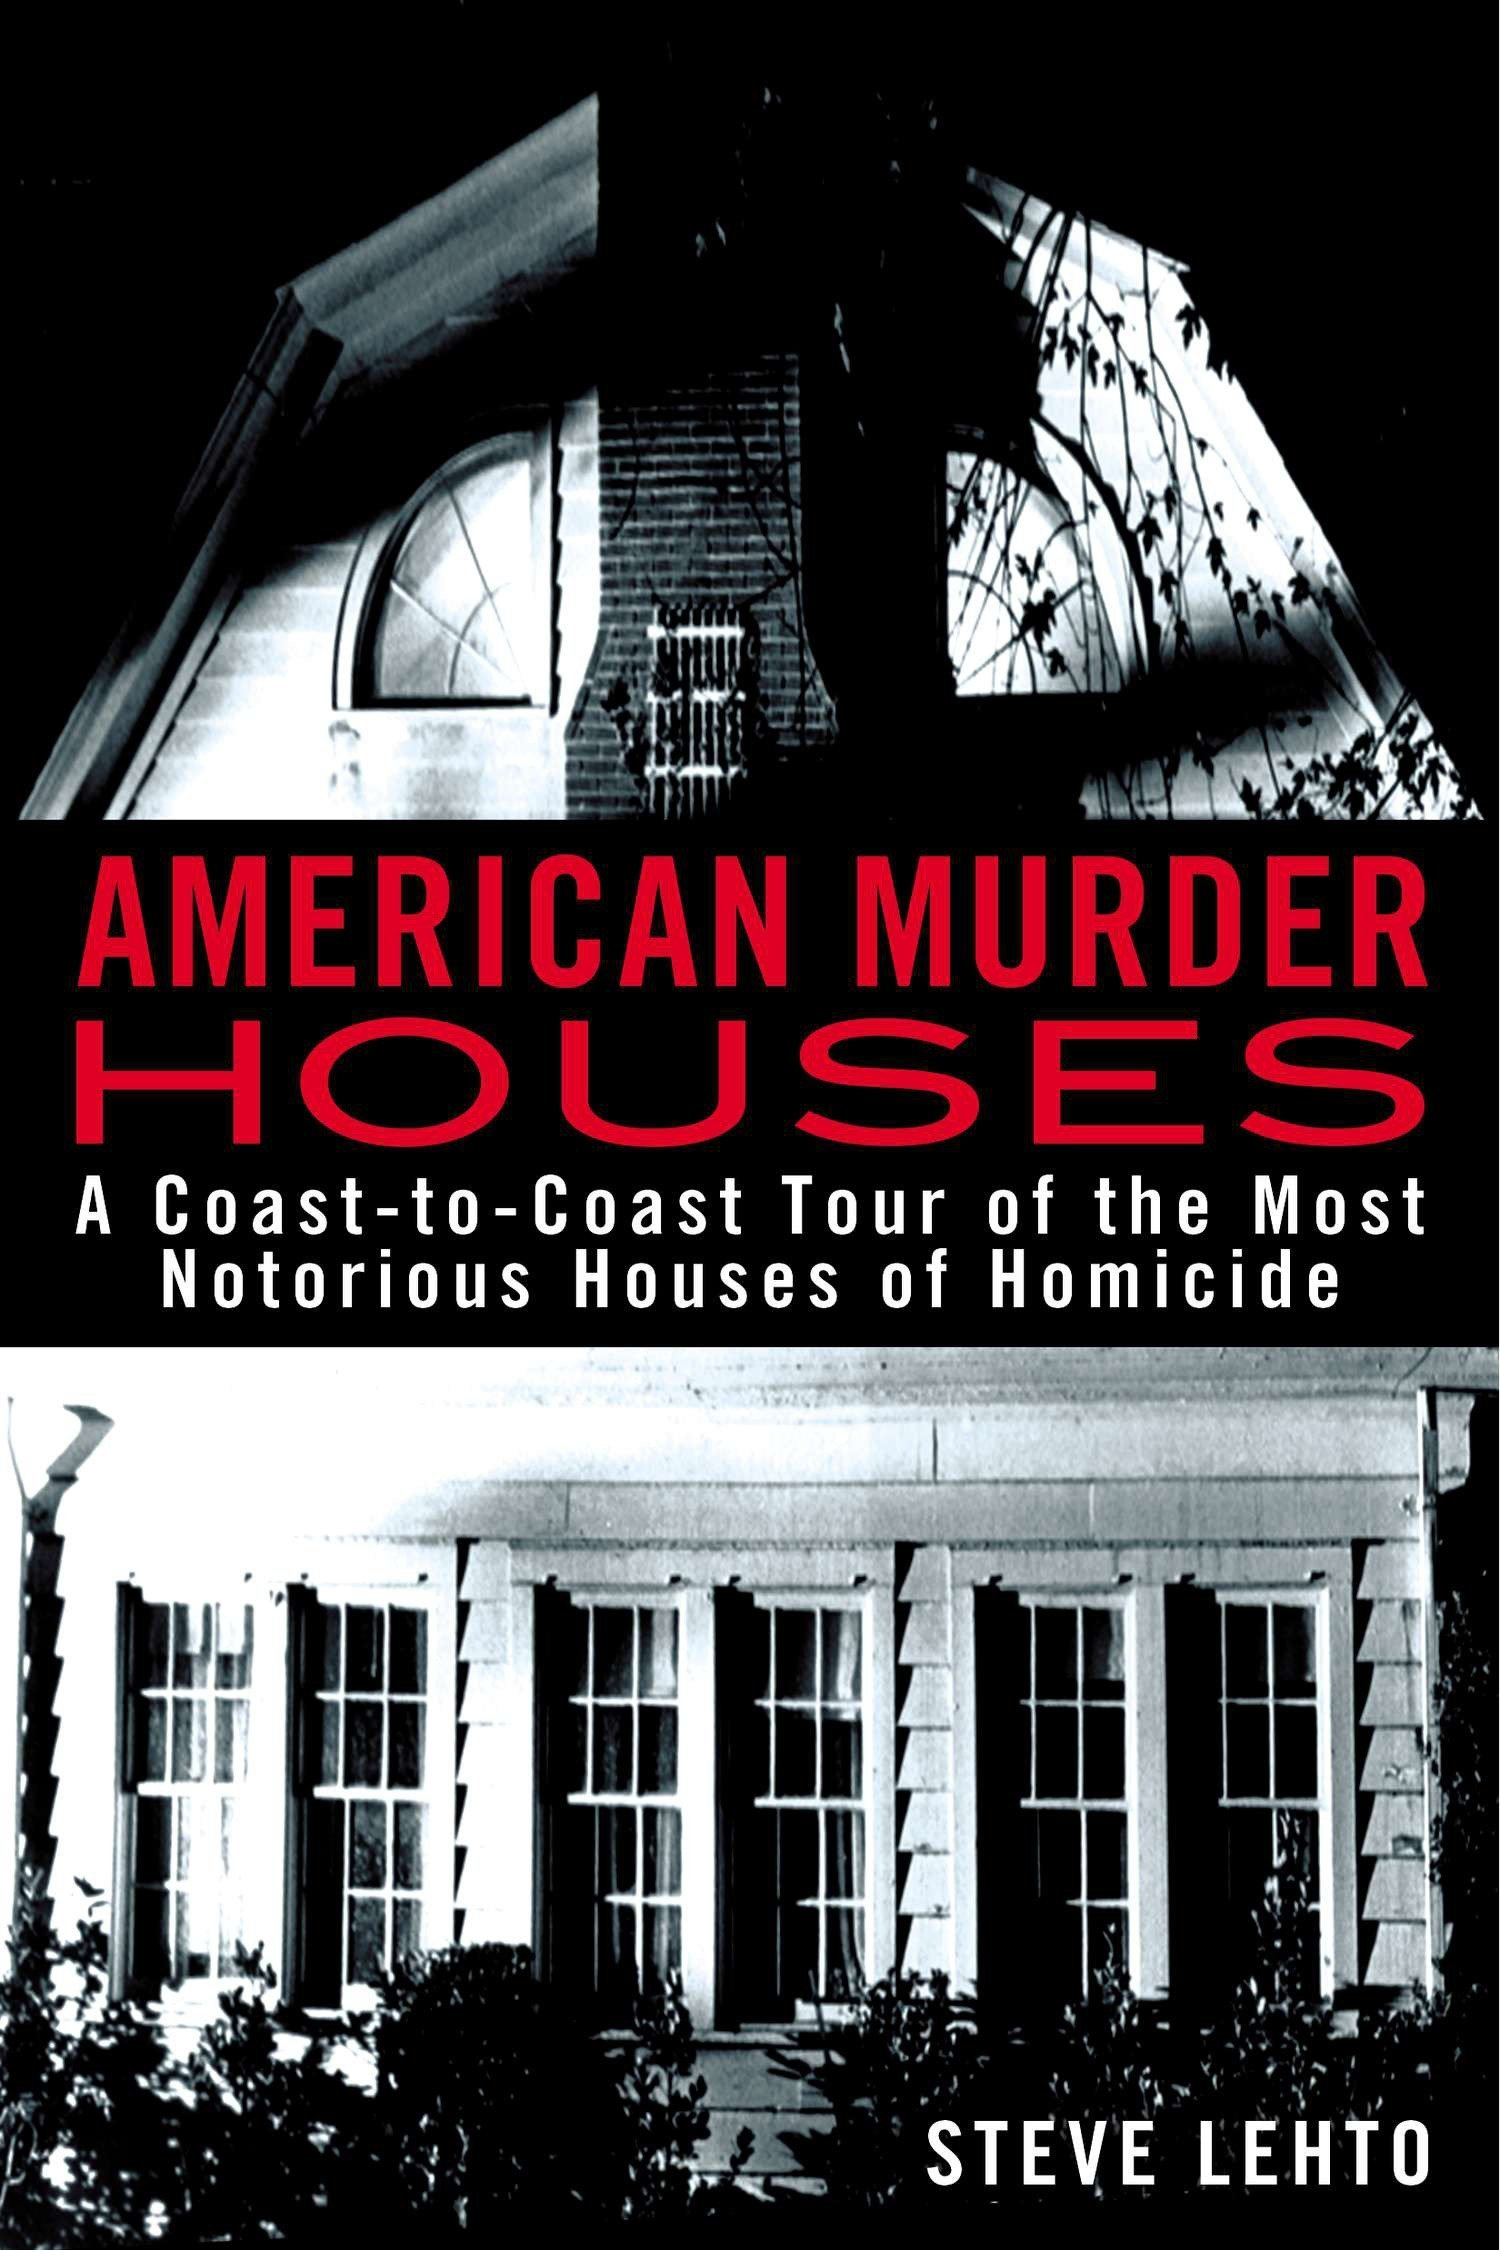 Image result for American Murder Houses: A Coast-to-Coast Tour of the Most Notorious Houses of Homicide